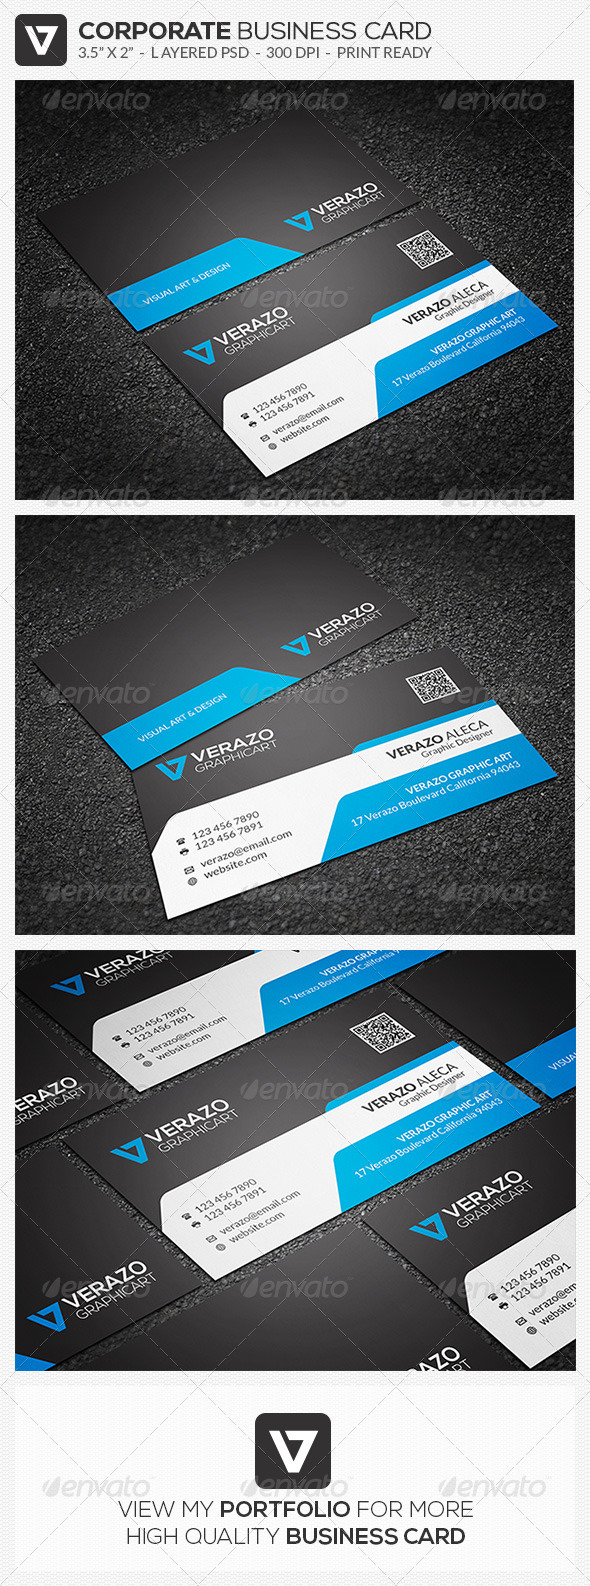 GraphicRiver Corporate Business Card 41 8008599